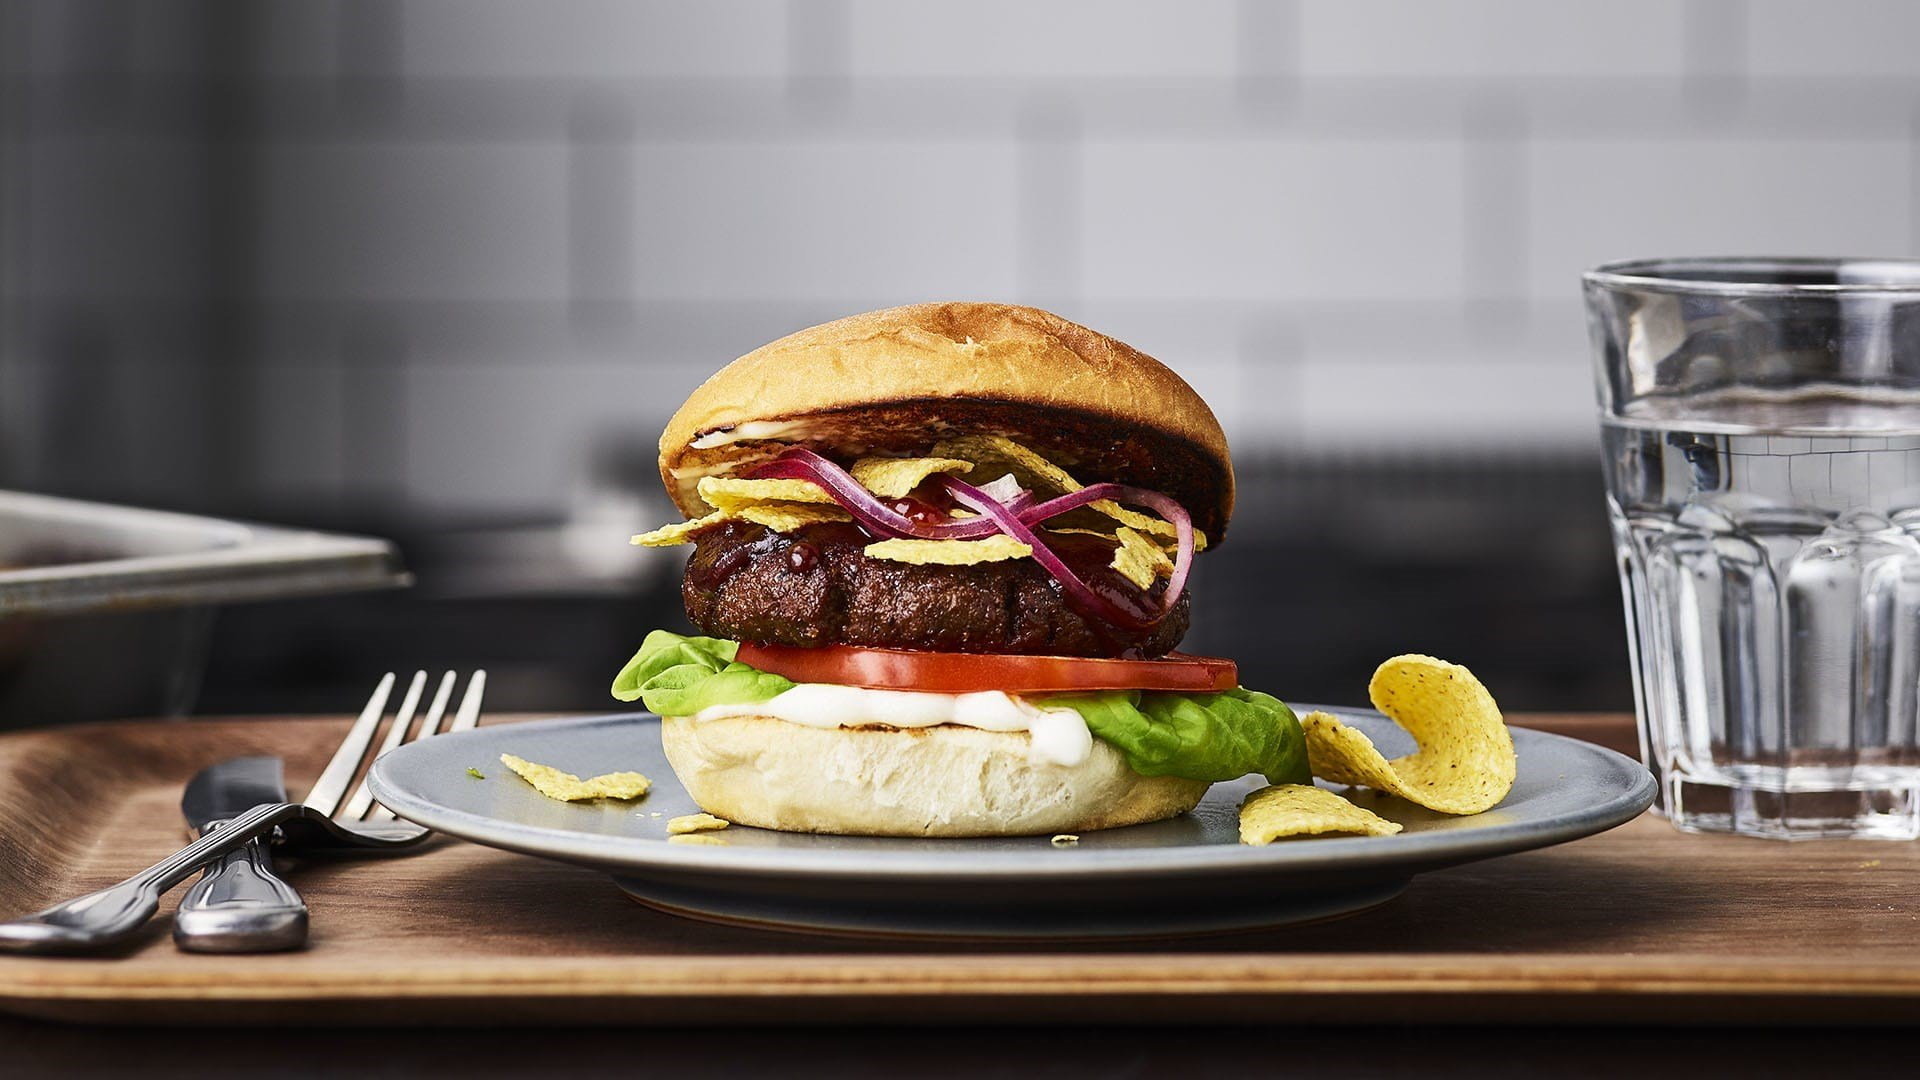 vegetarburger på tallerken